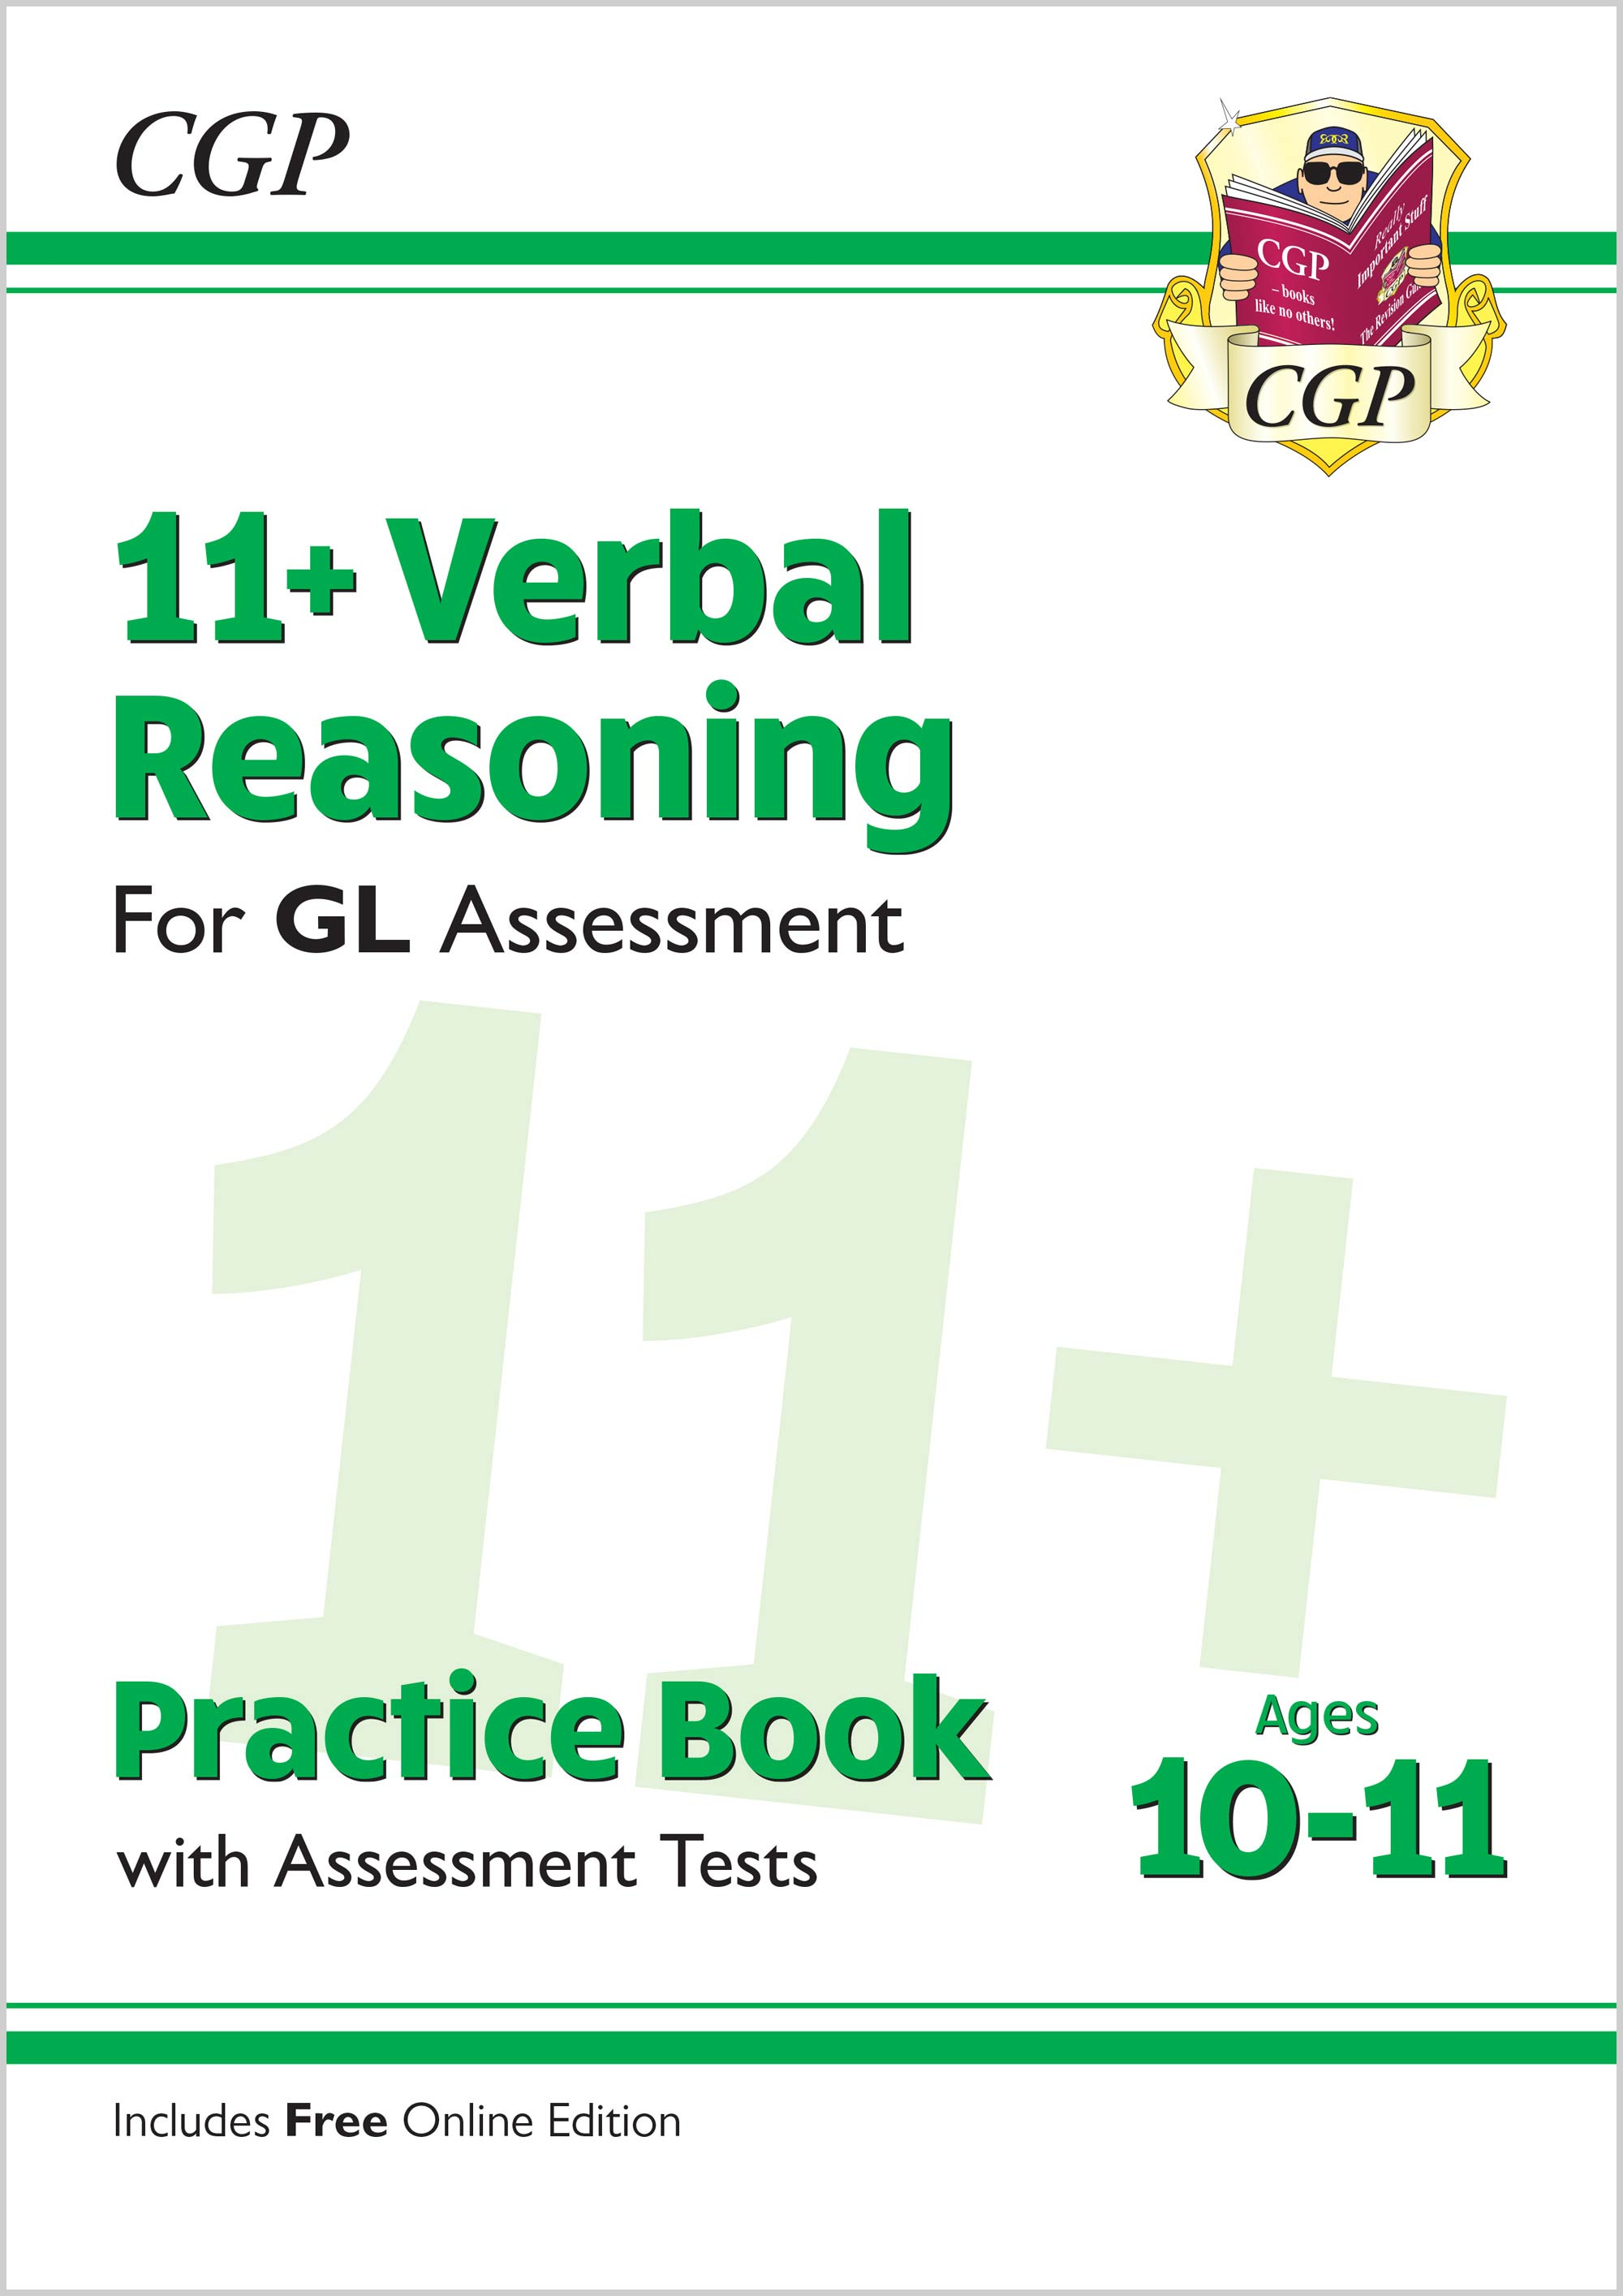 V6QE2 - New 11+ GL Verbal Reasoning Practice Book & Assessment Tests - Ages 10-11 (with Online Editi